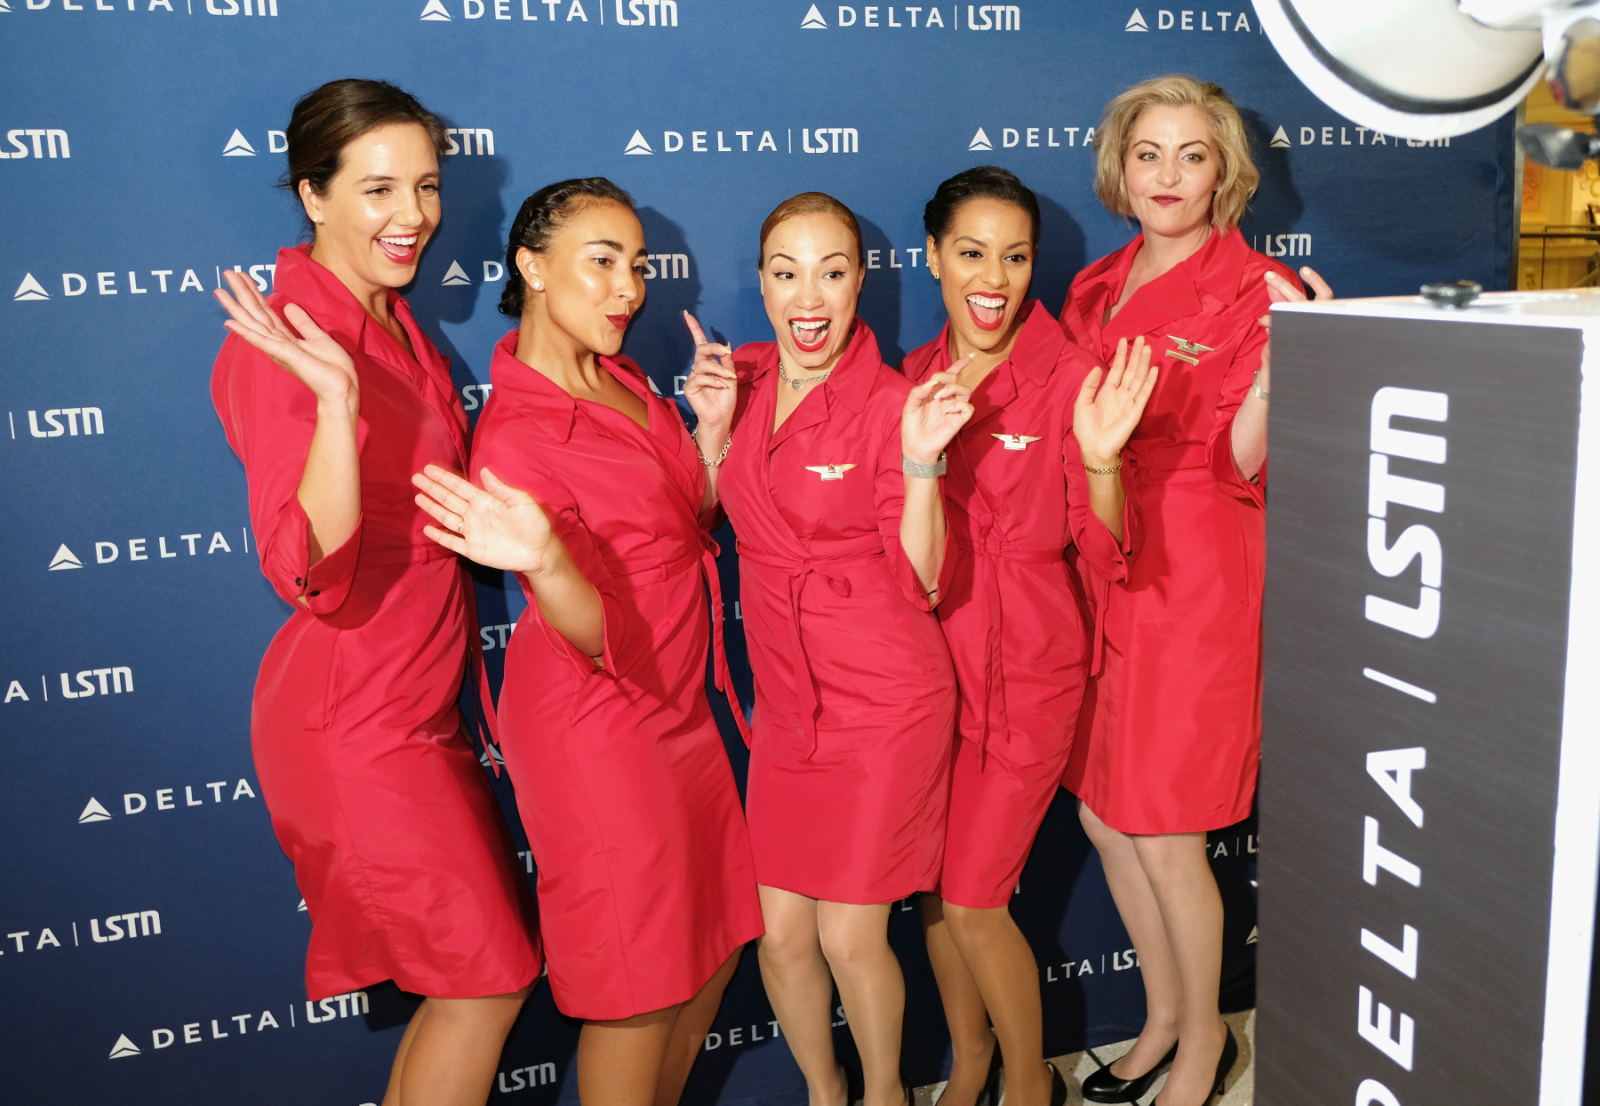 Delta Hosted A Rave On An Airplane And Things Got Weird